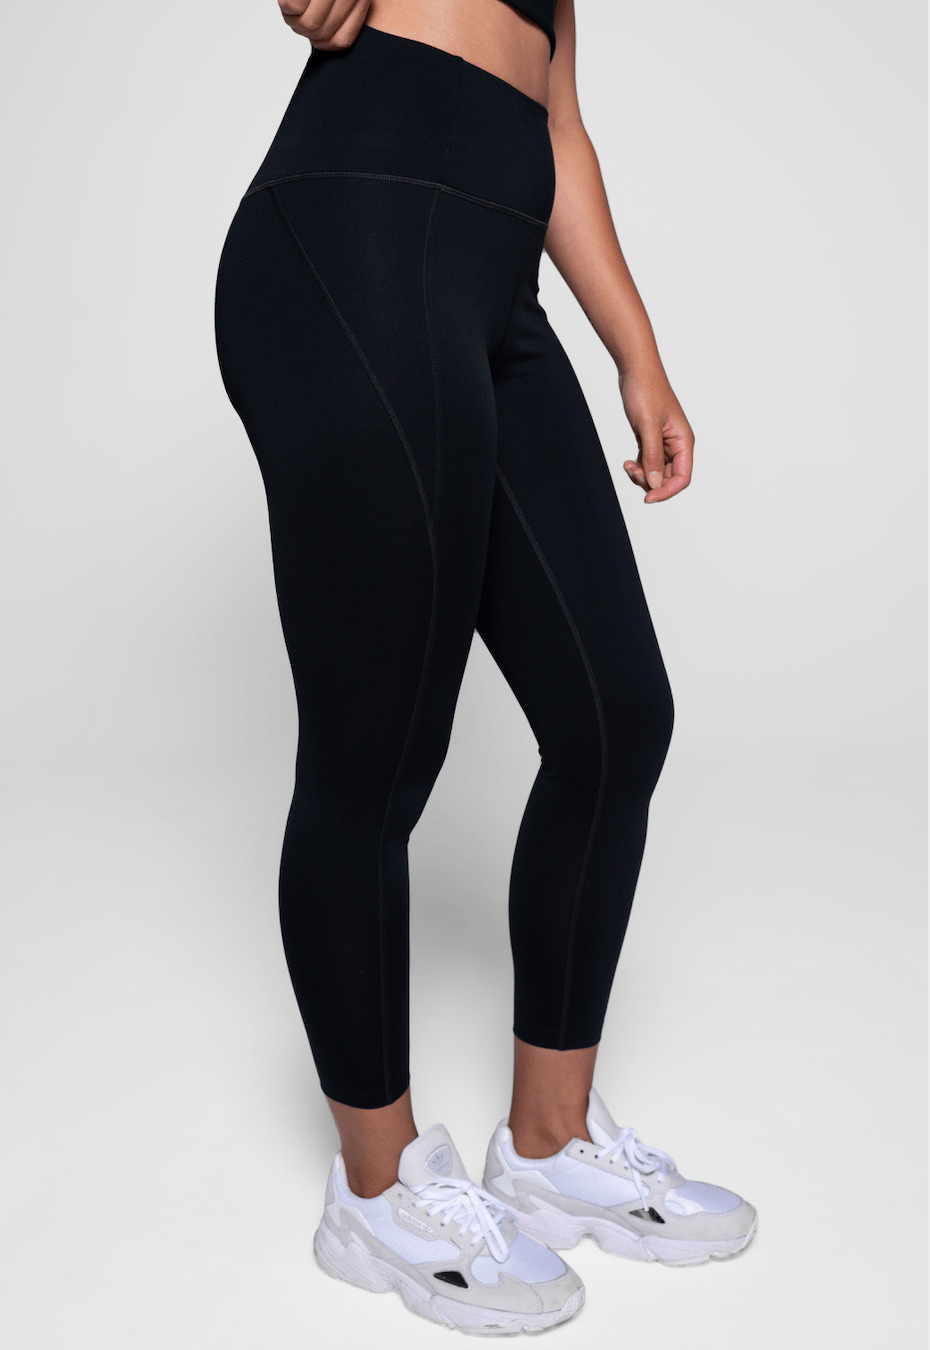 storeethic,Leggings,Svartar Compressive Háar Leggings ?id=12828434956361